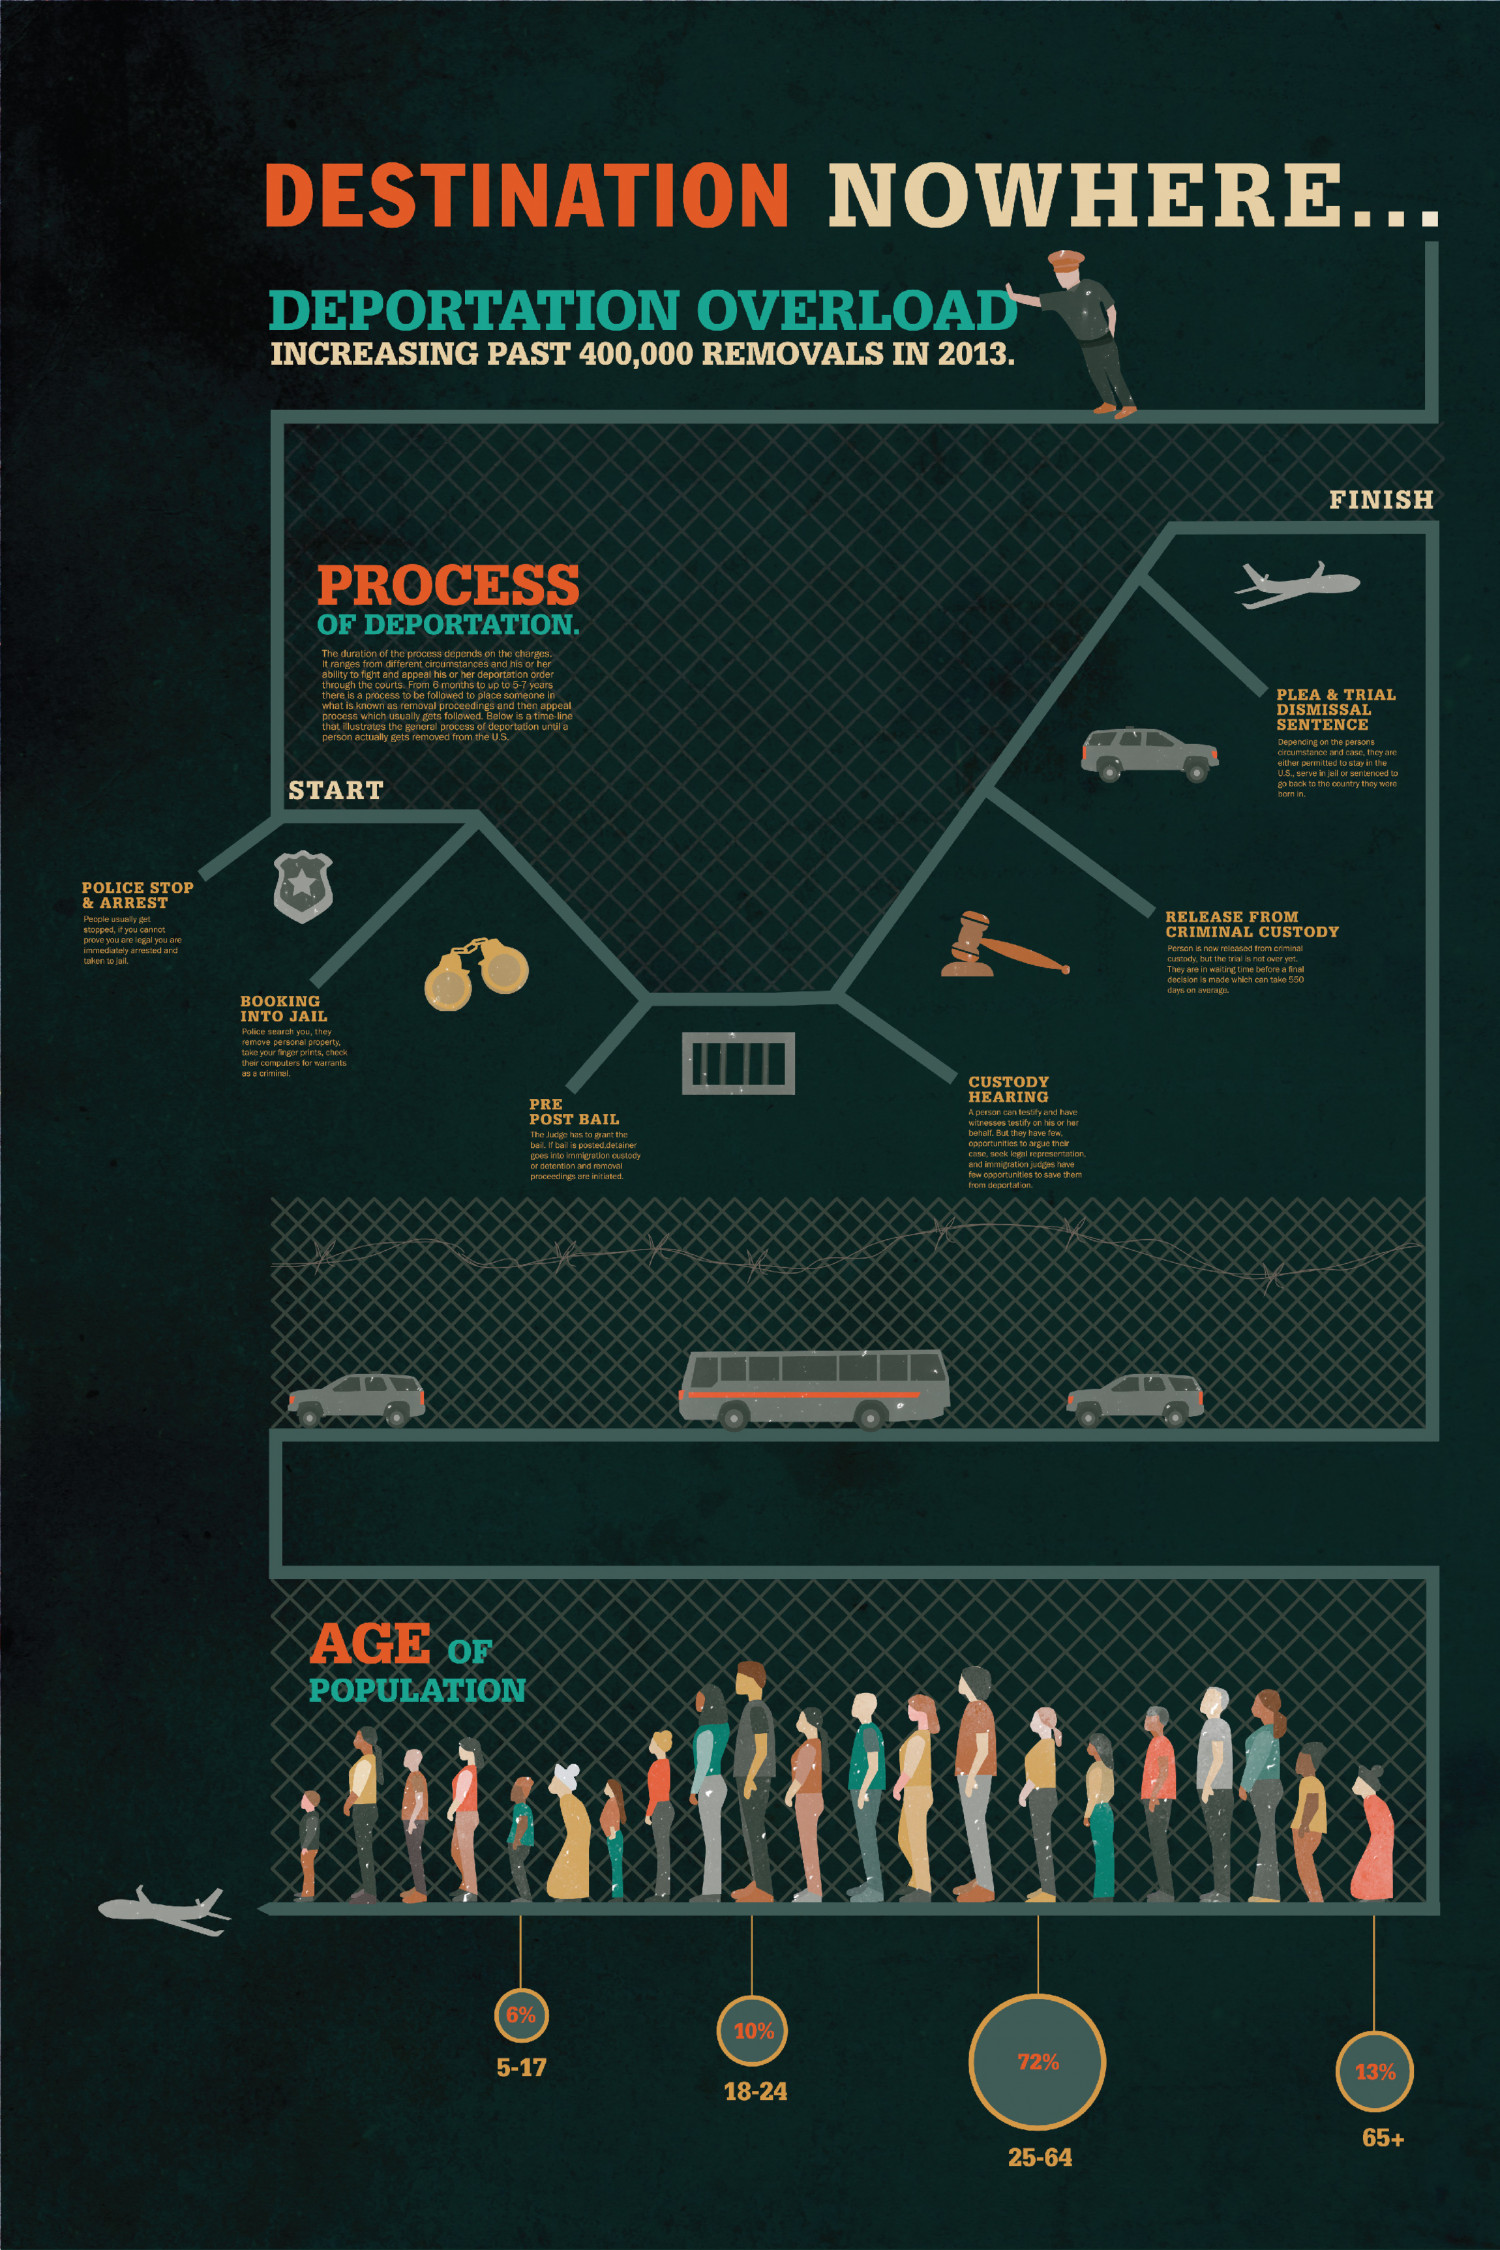 Destination Nowhere... Infographic